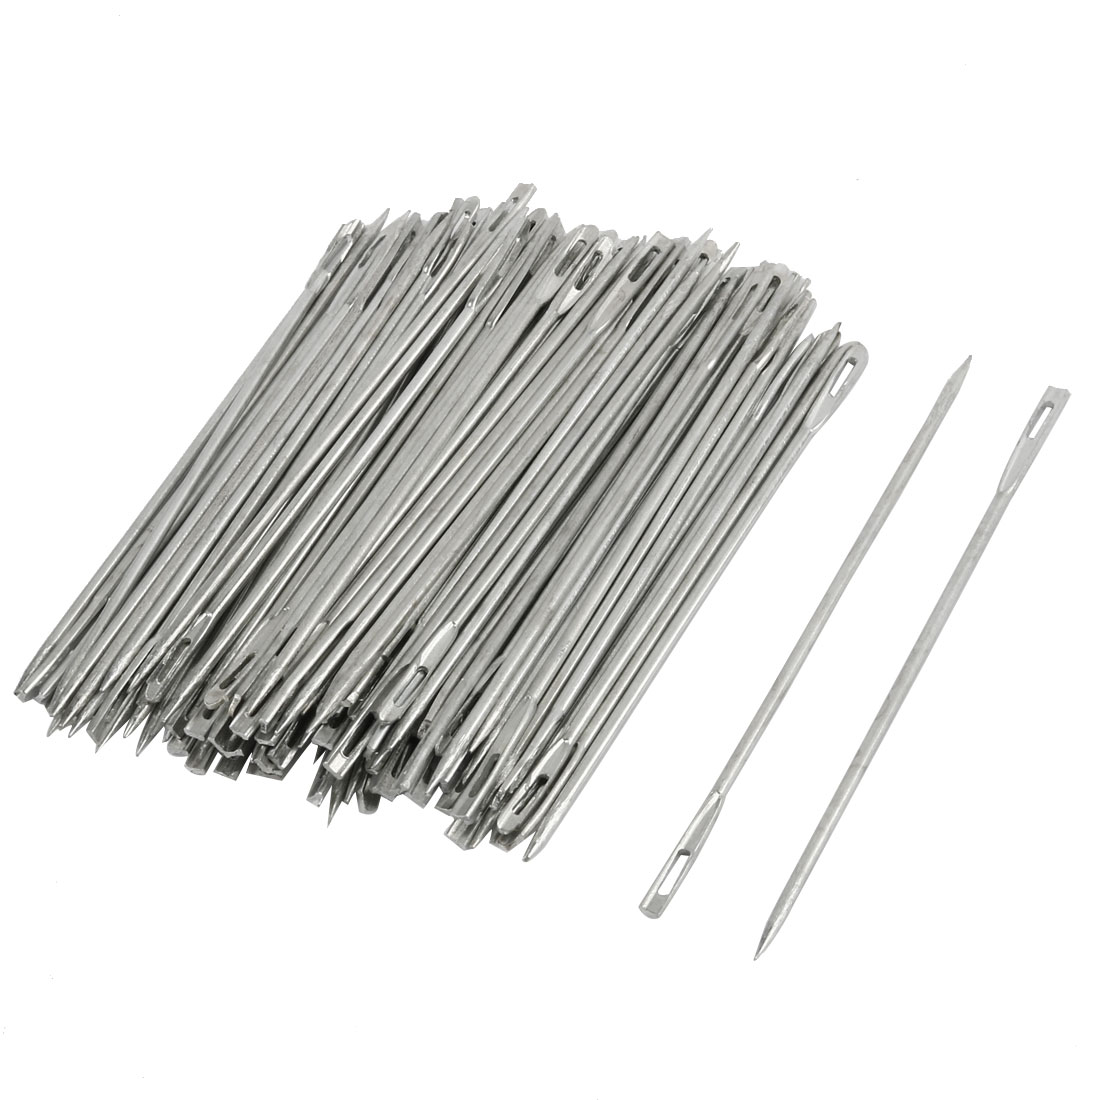 100 Pcs Sharp Tip Package Quilting Tailor Sewing Needles 10cm Long